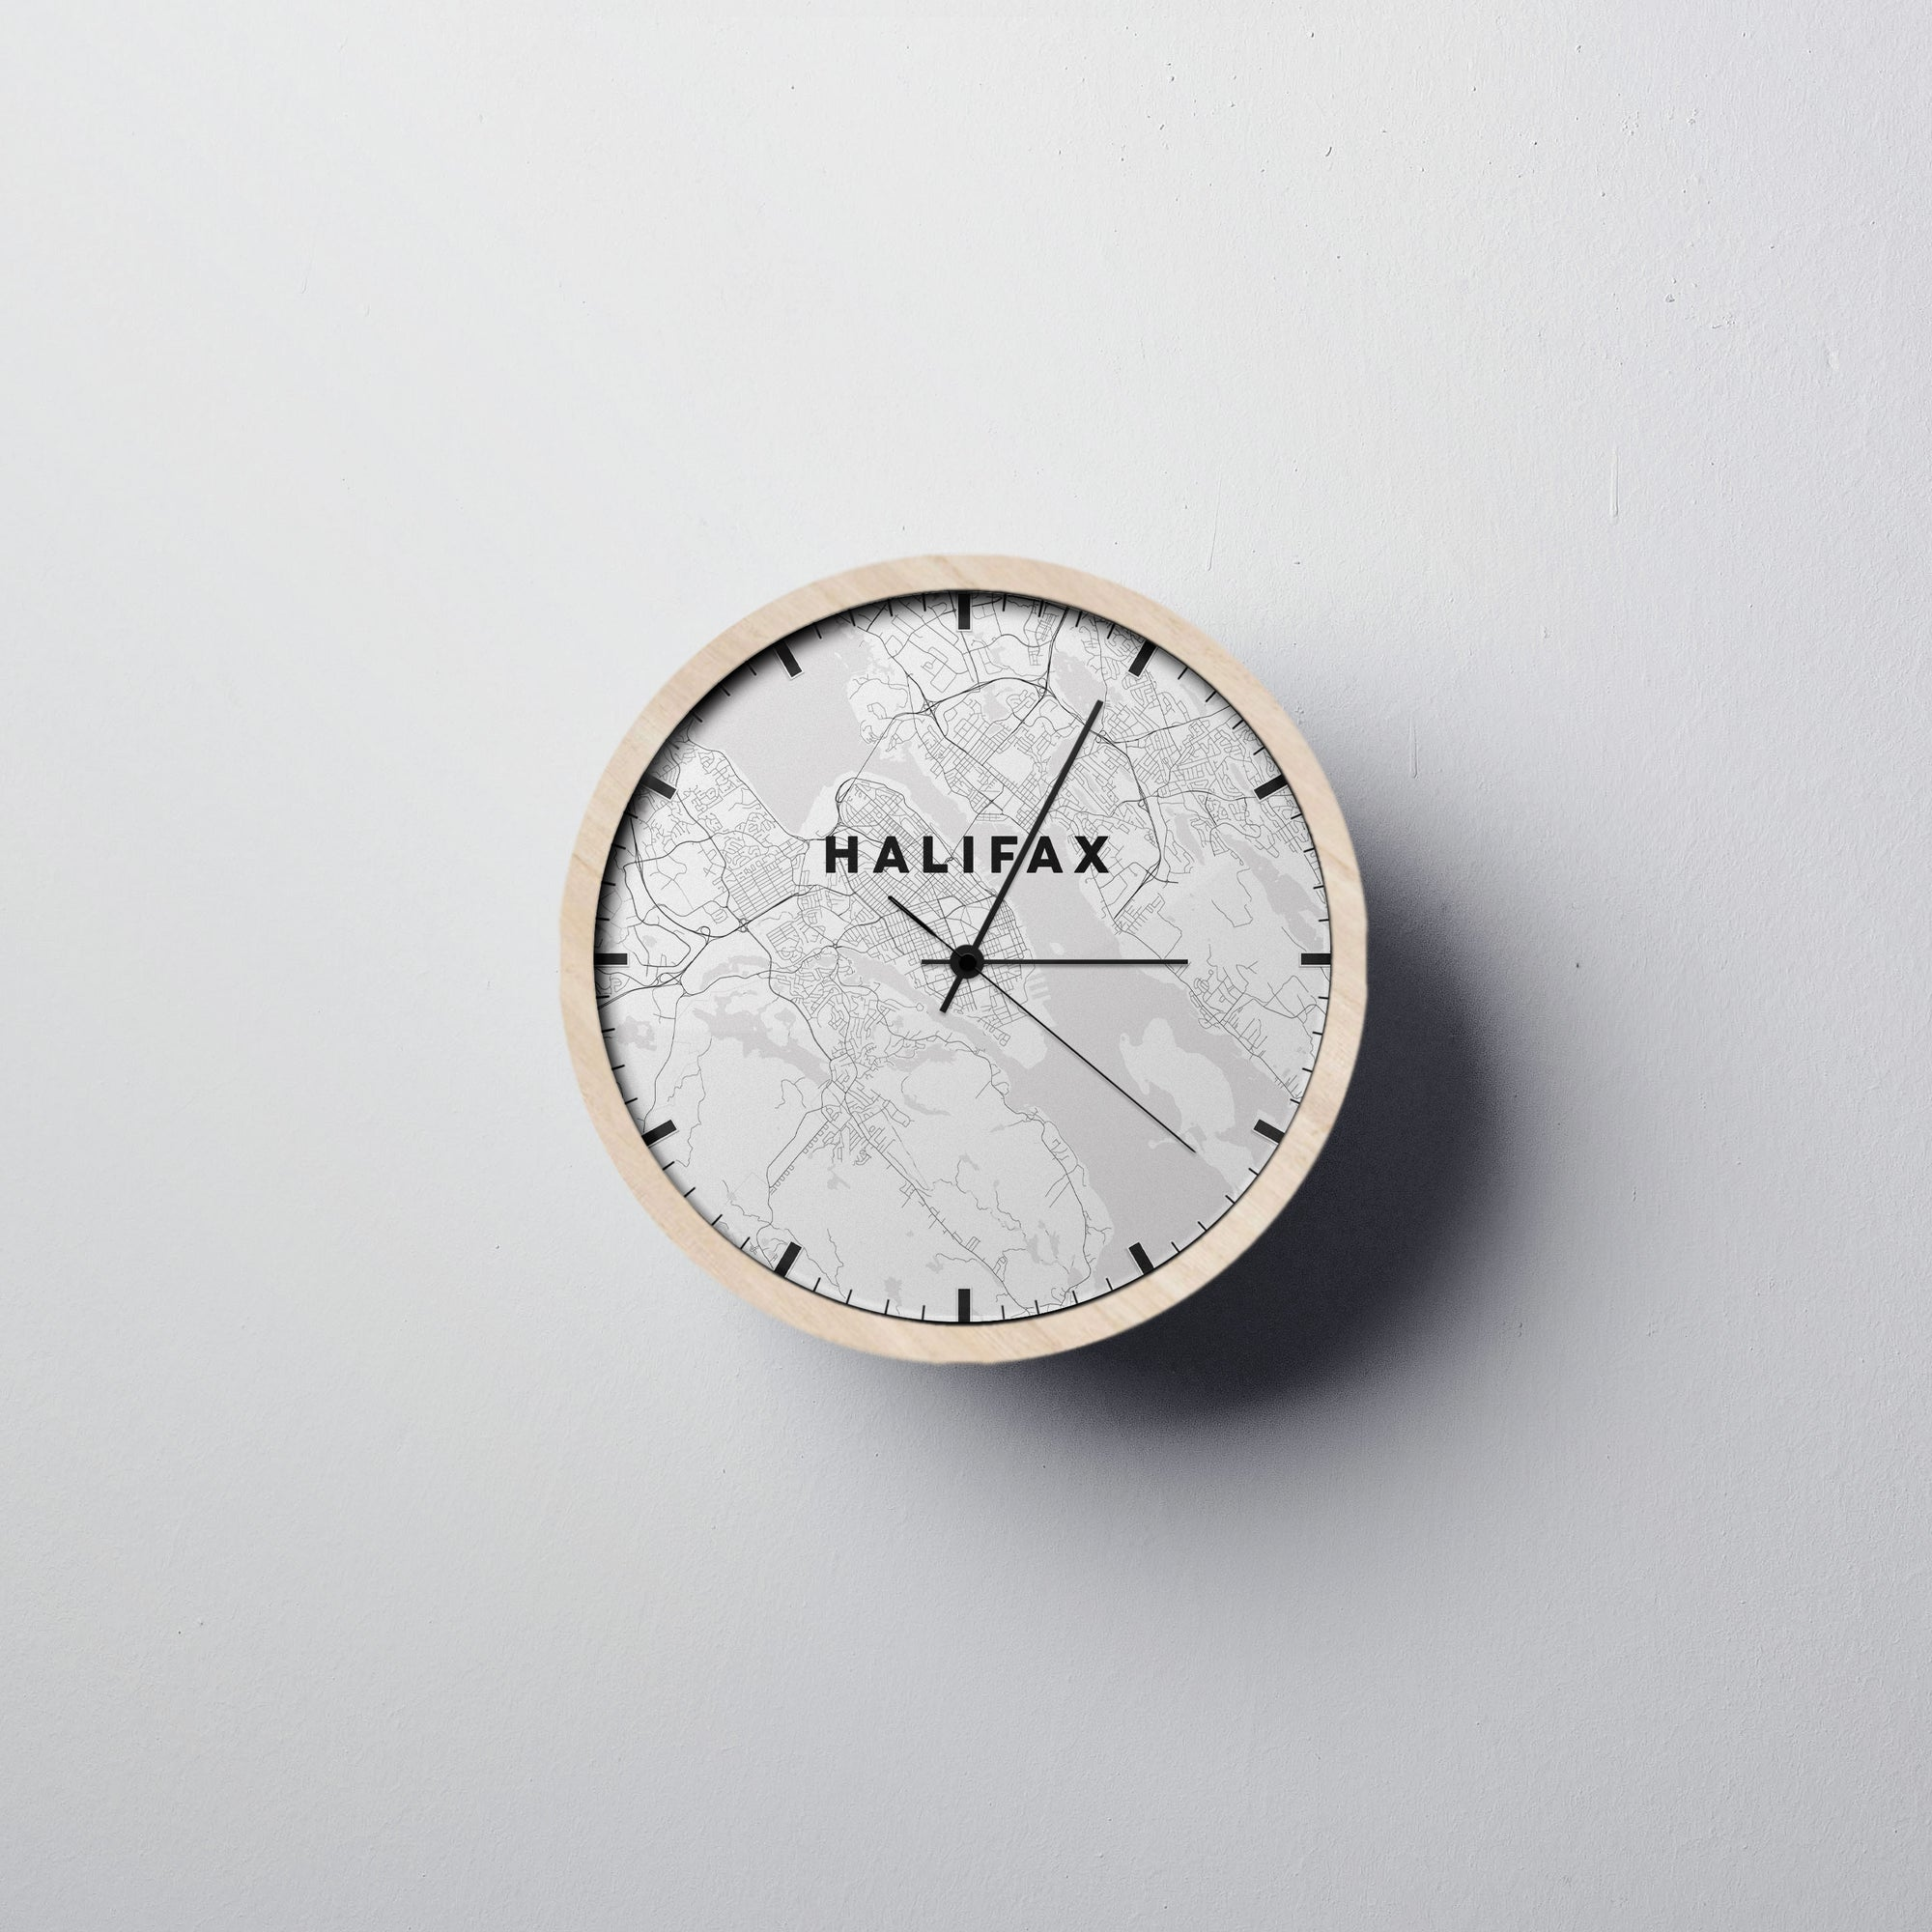 Halifax Wall Clock